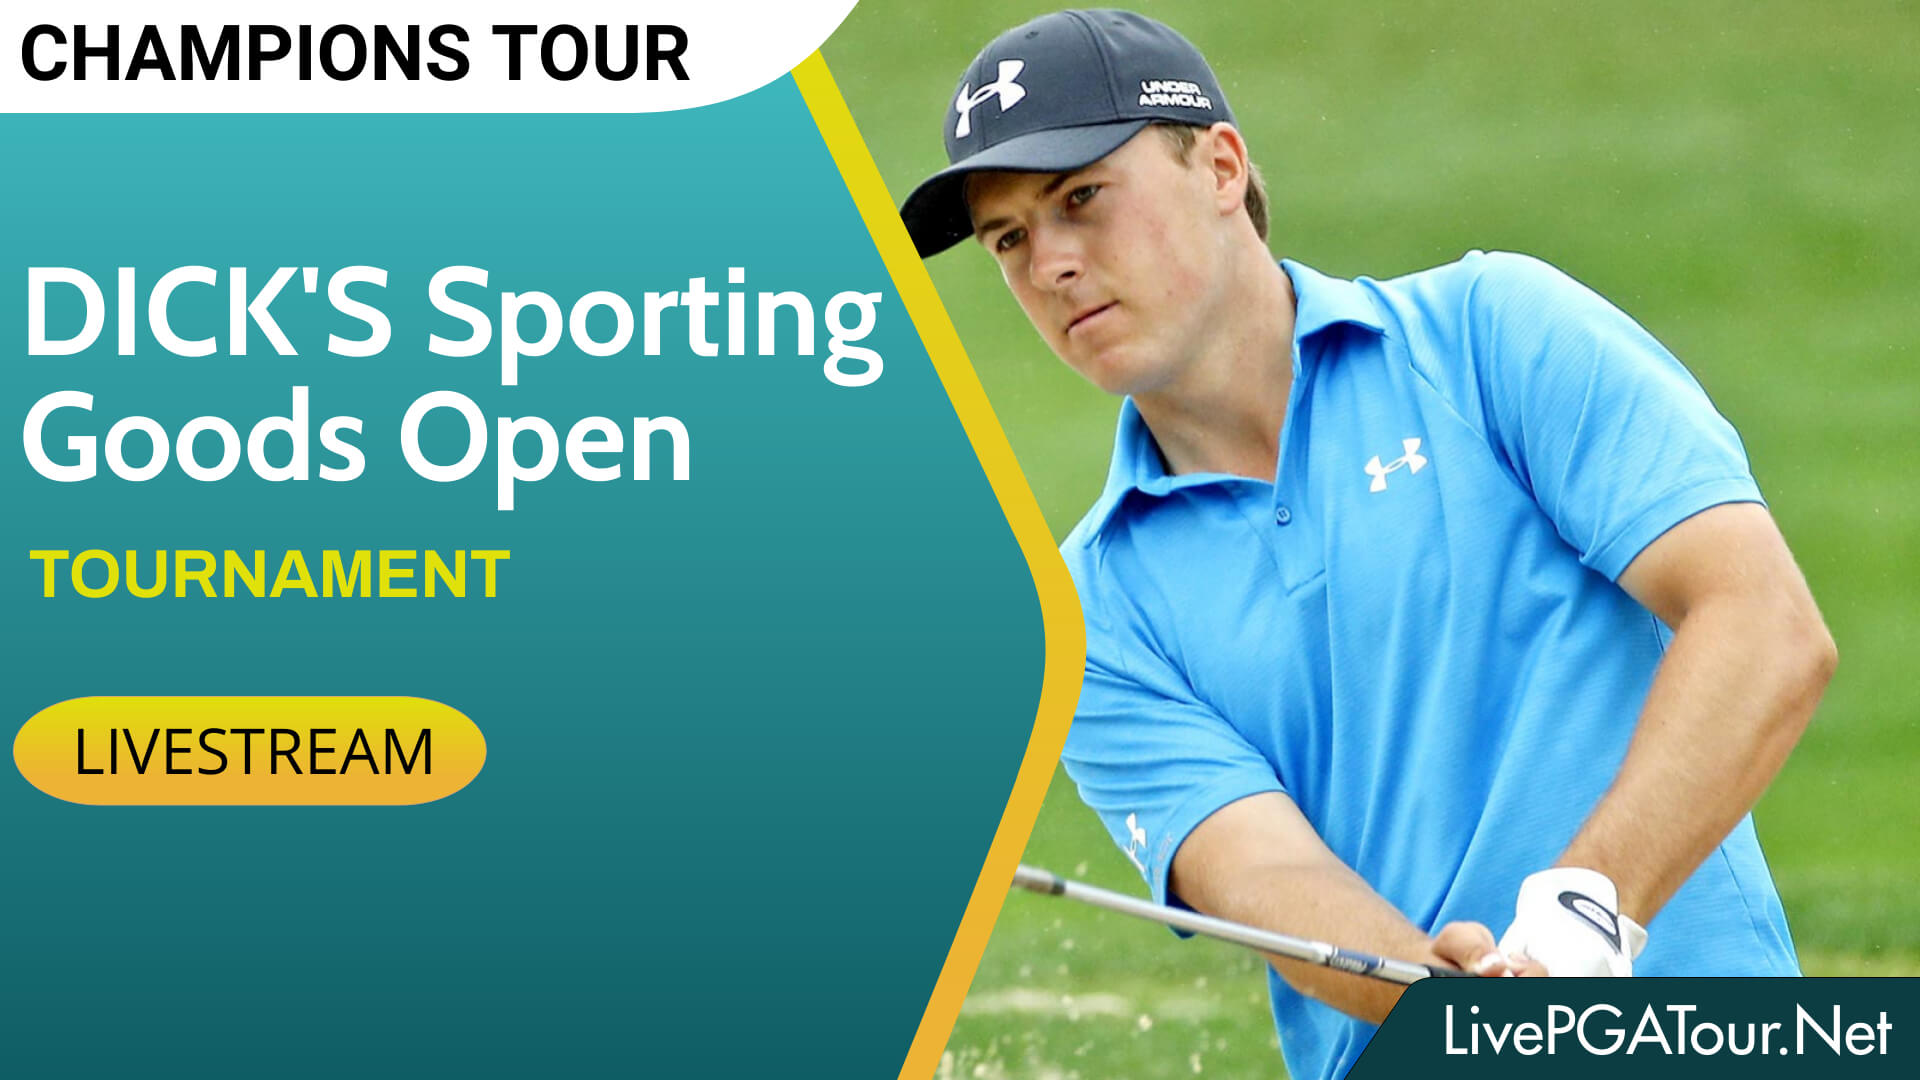 DICKS Sporting Goods Open Live Stream 2021: Champions Tour Day 2